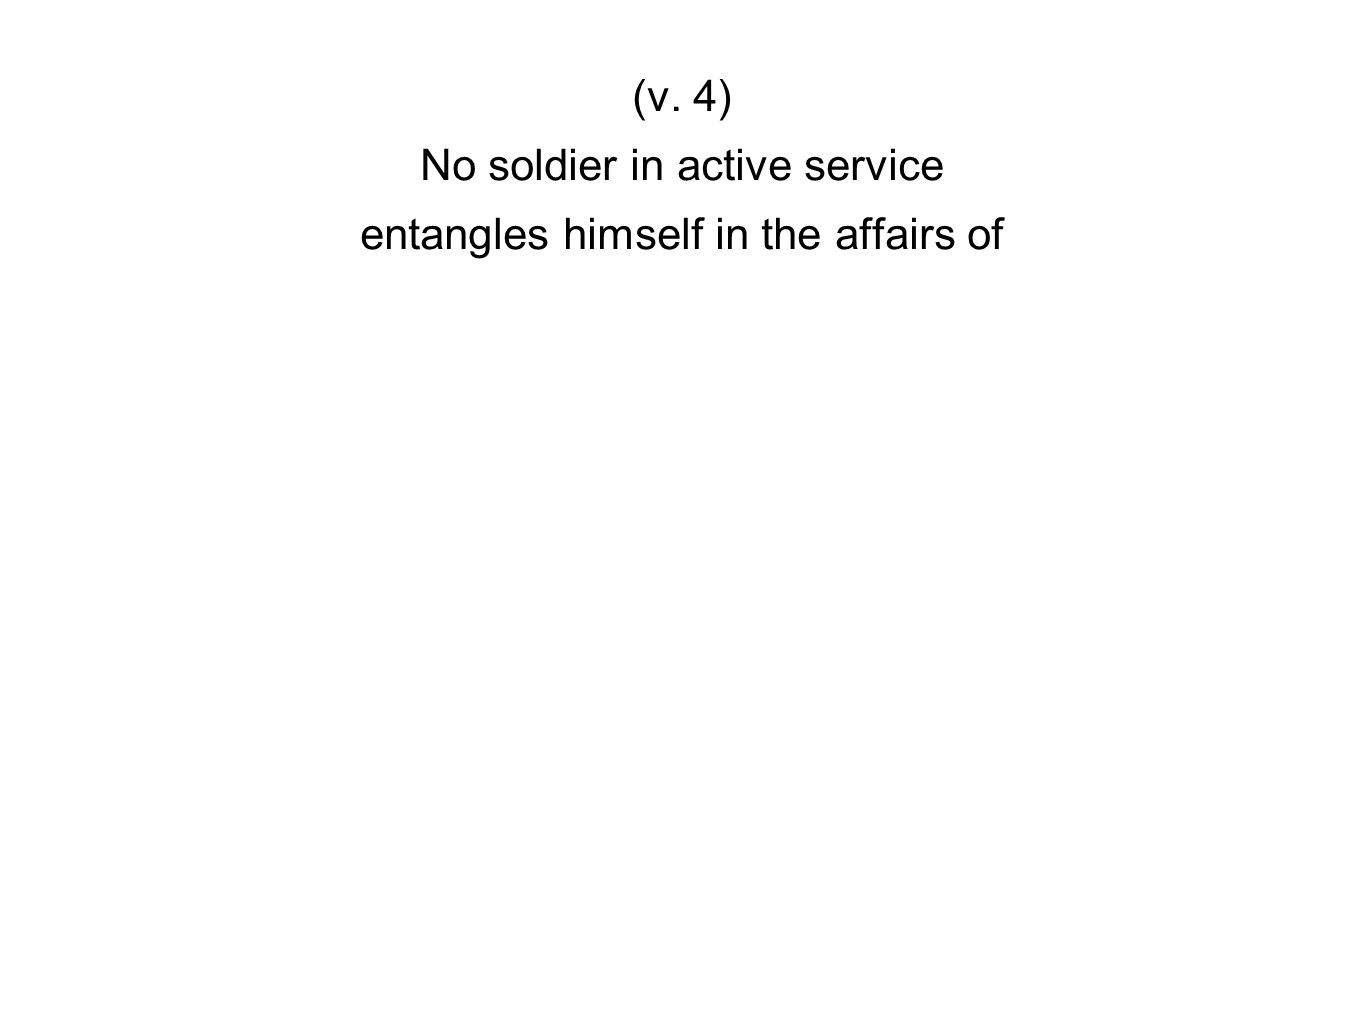 (v. 4) No soldier in active service entangles himself in the affairs of